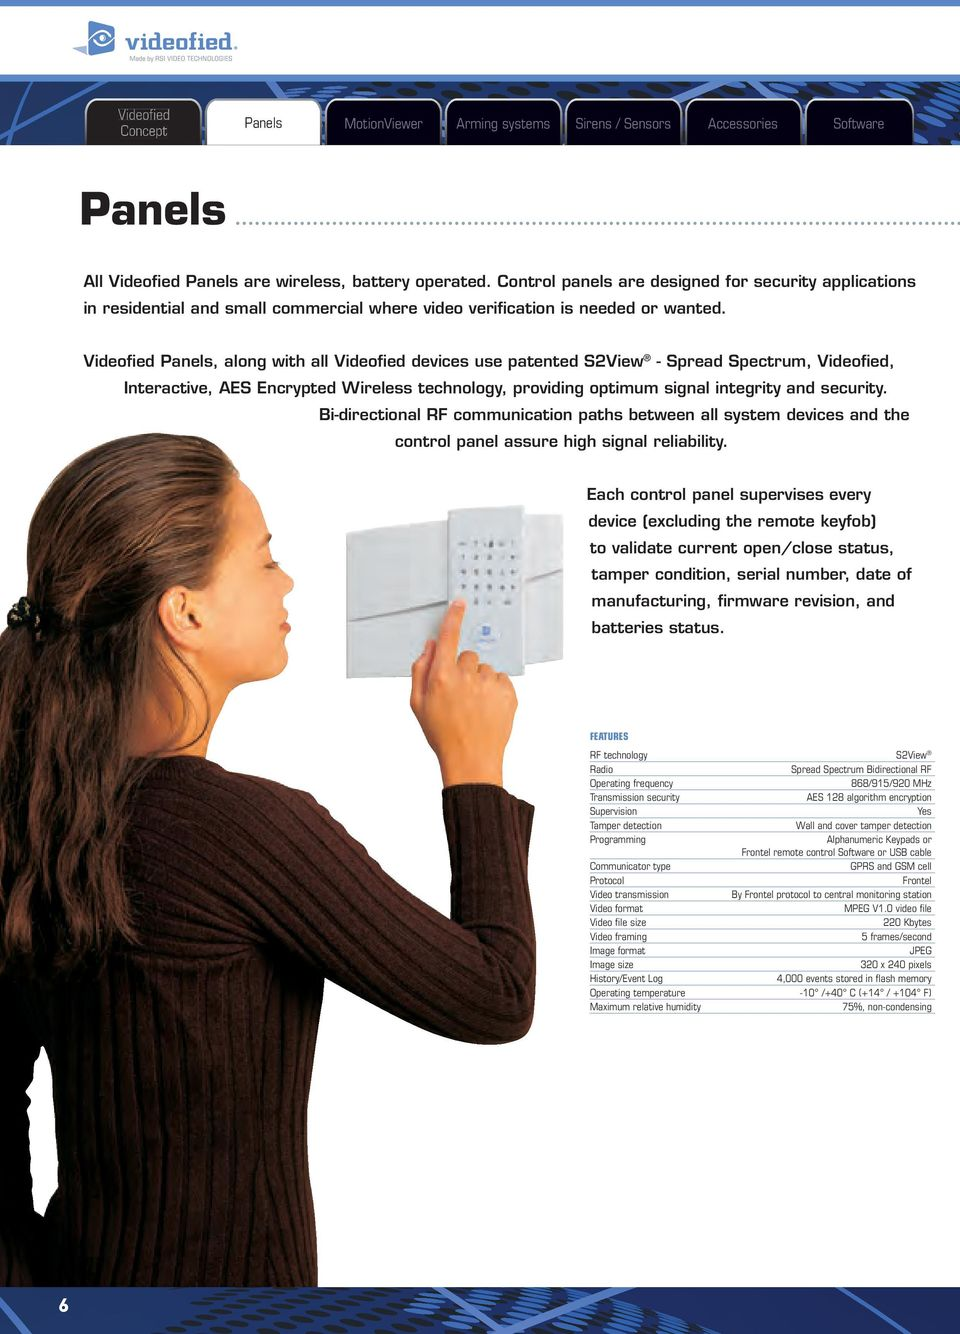 Videofied Panels, along with all Videofied devices use patented S2View - Spread Spectrum, Videofied, Interactive, AES Encrypted Wireless technology, providing optimum signal integrity and security.